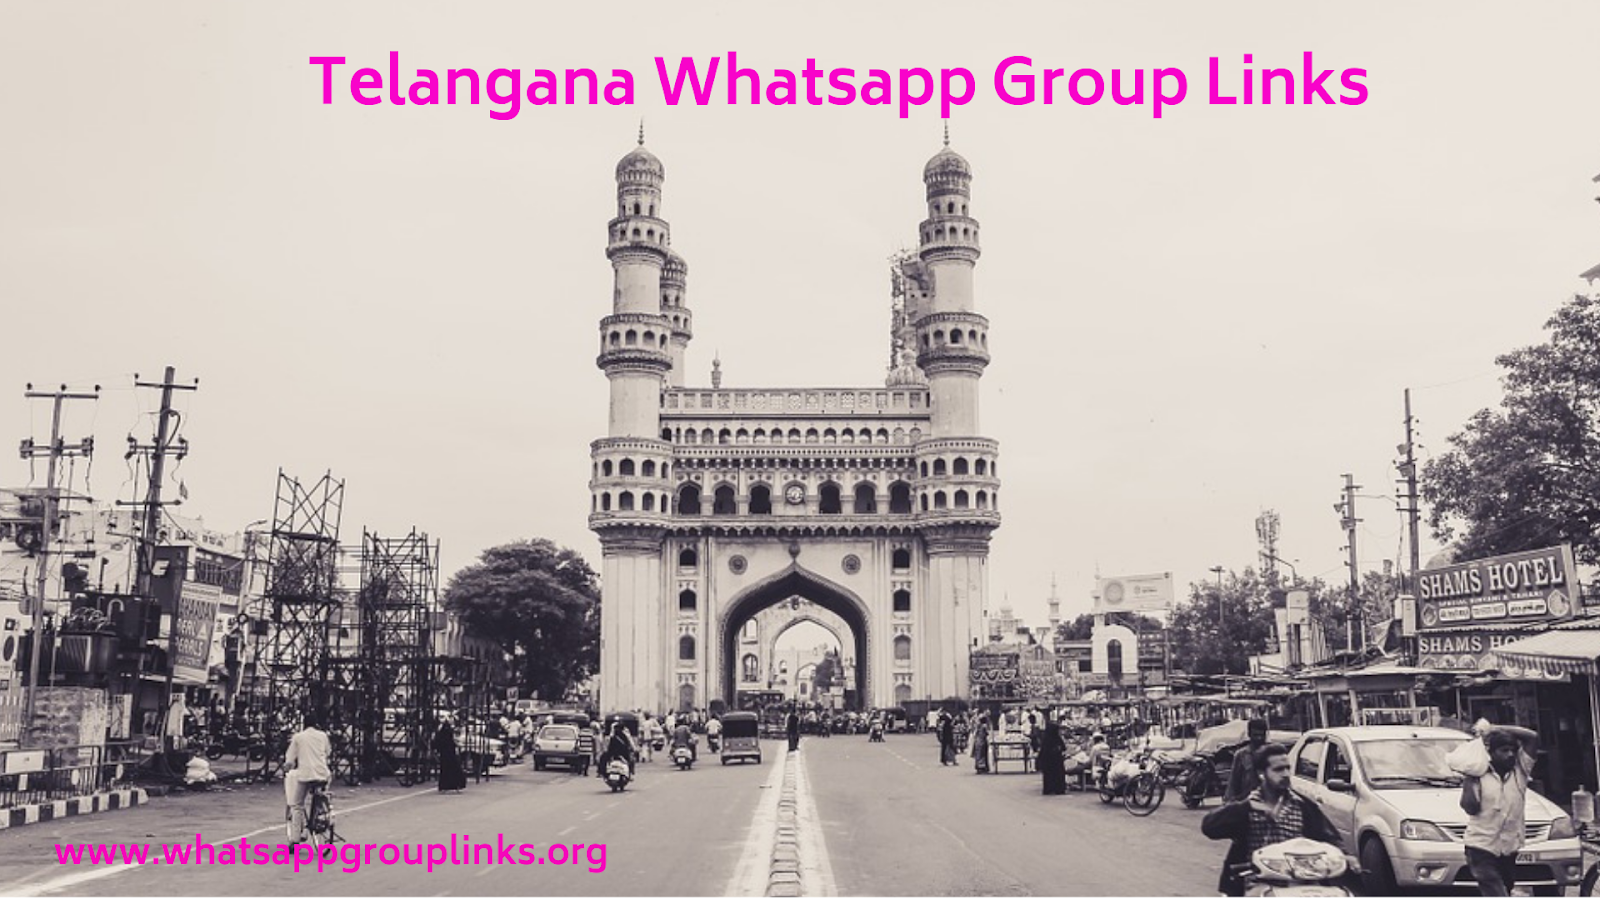 Join Telangana Whatsapp Group Links List - Whatsapp Group Links